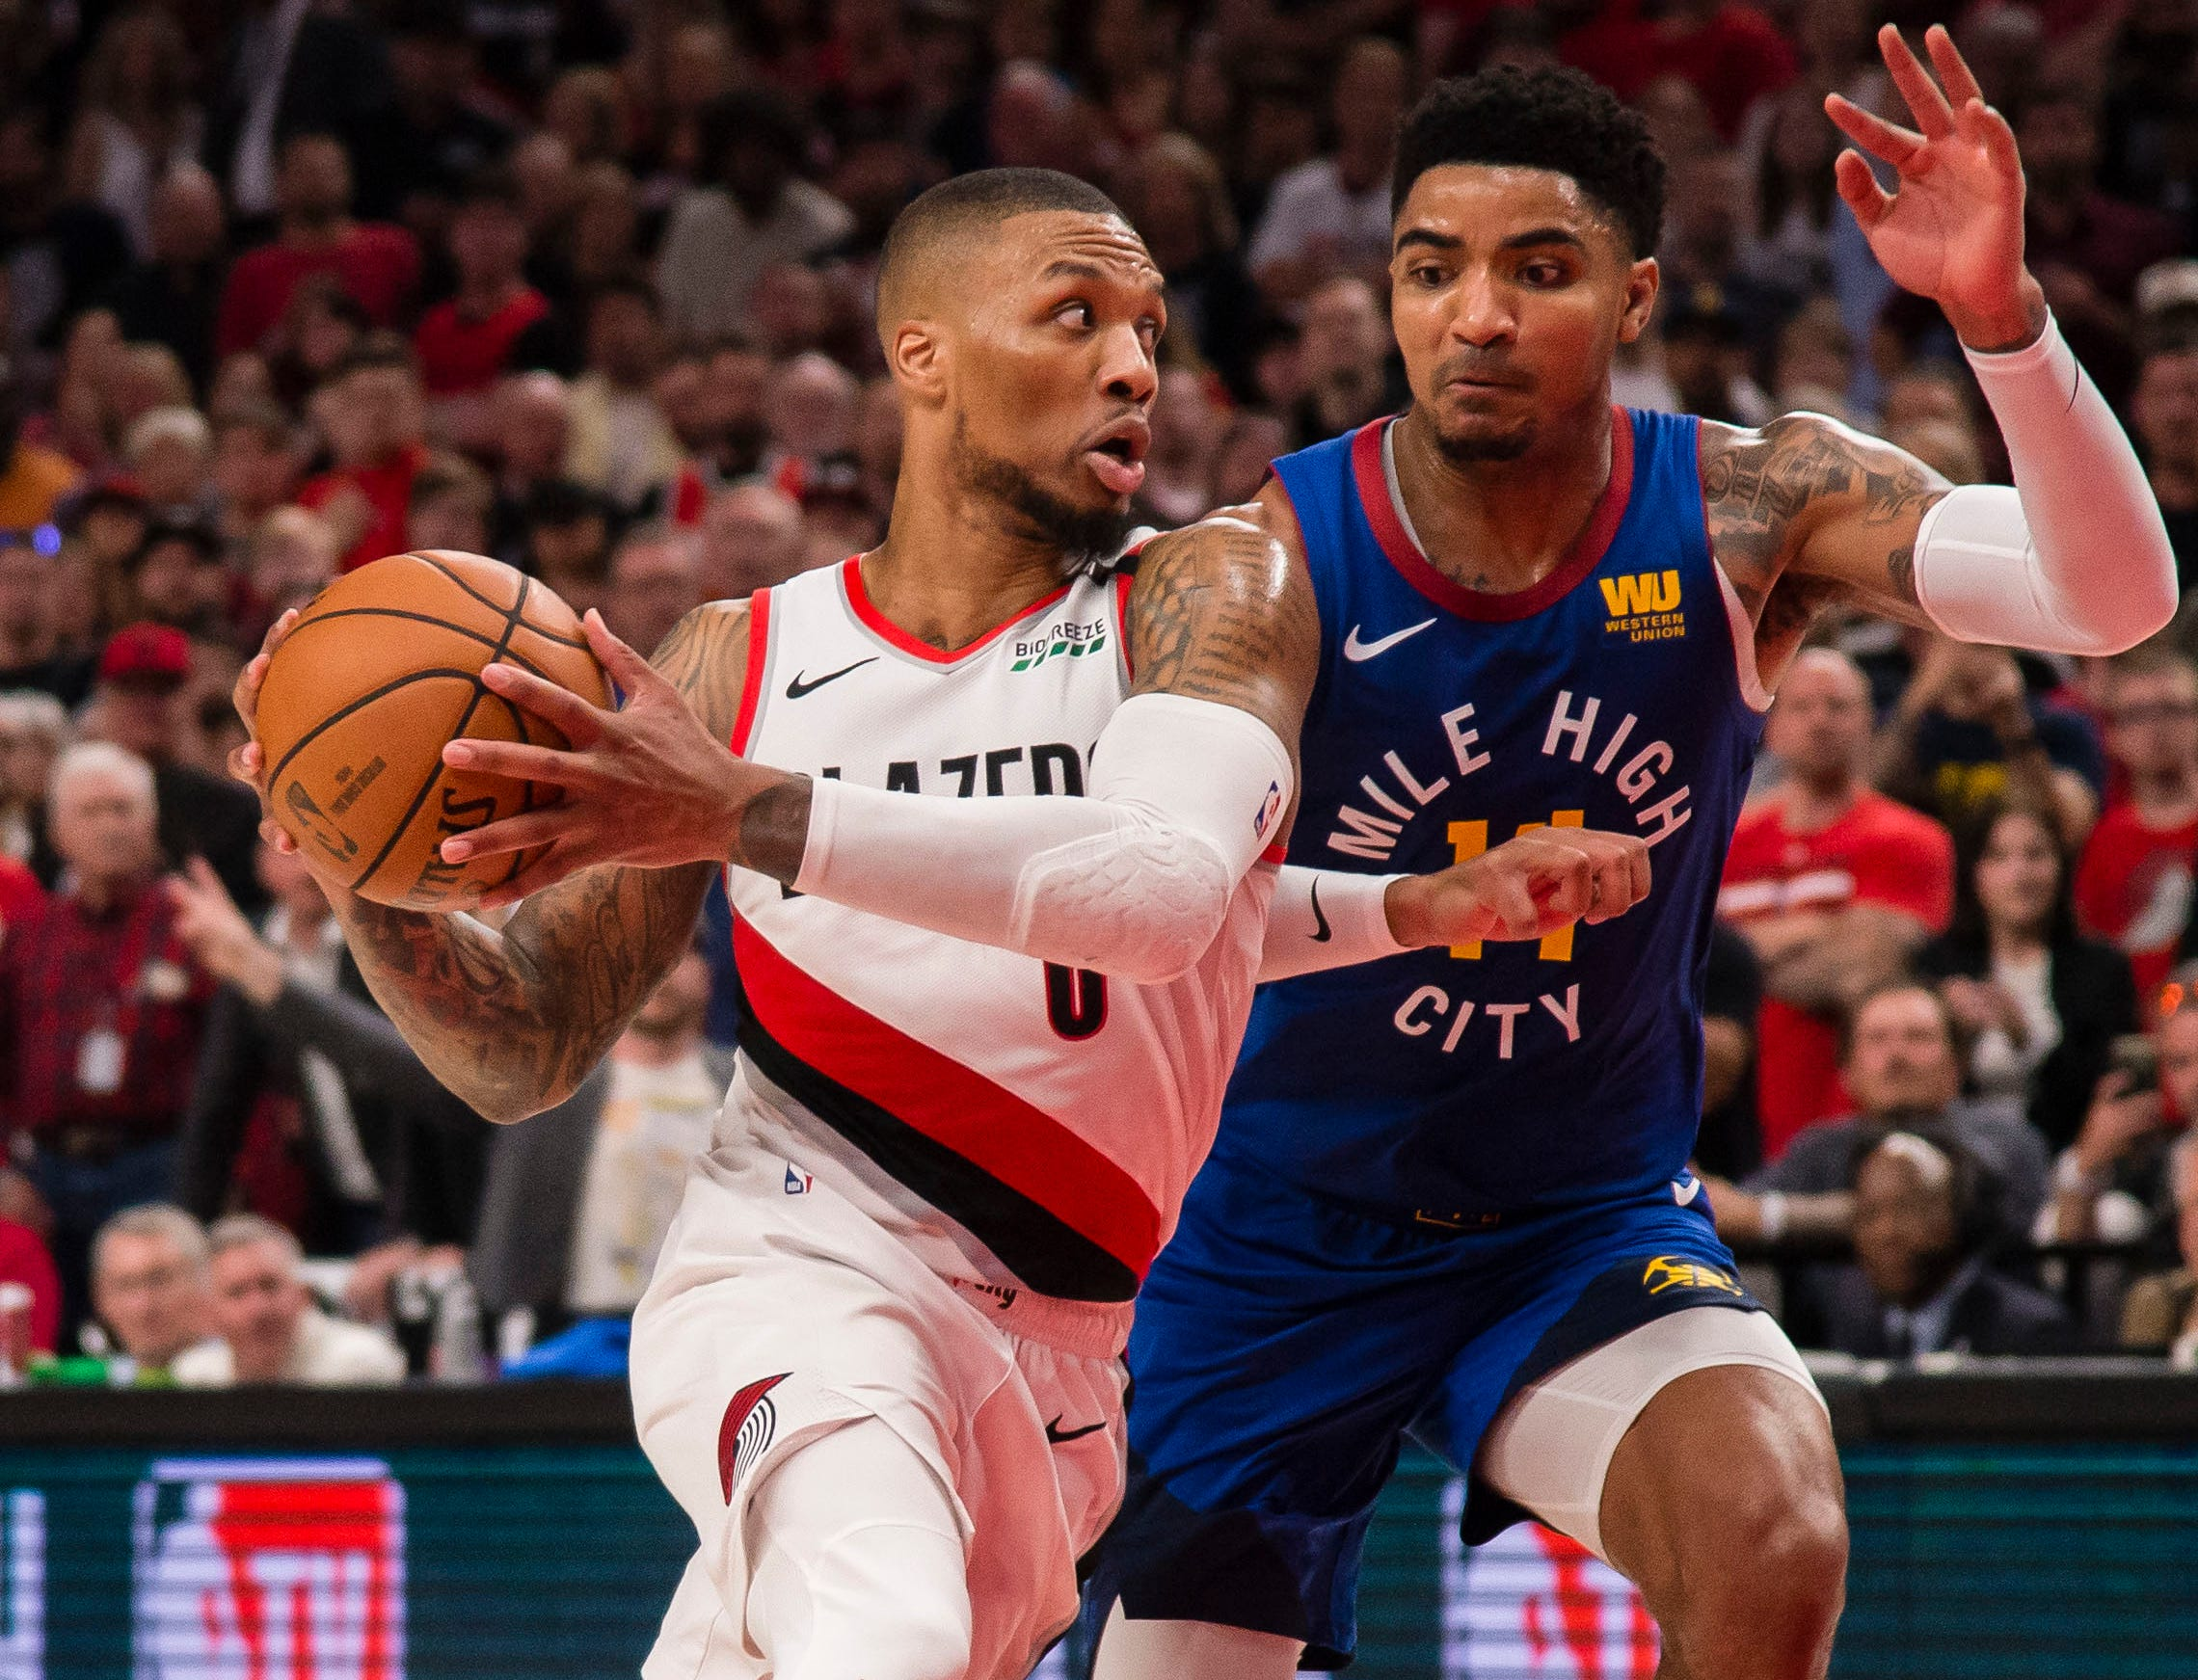 May 9: Blazers guard Damian Lillard (0) drives against Nuggets defender Gary Harris (14) during Game 6 in Portland.